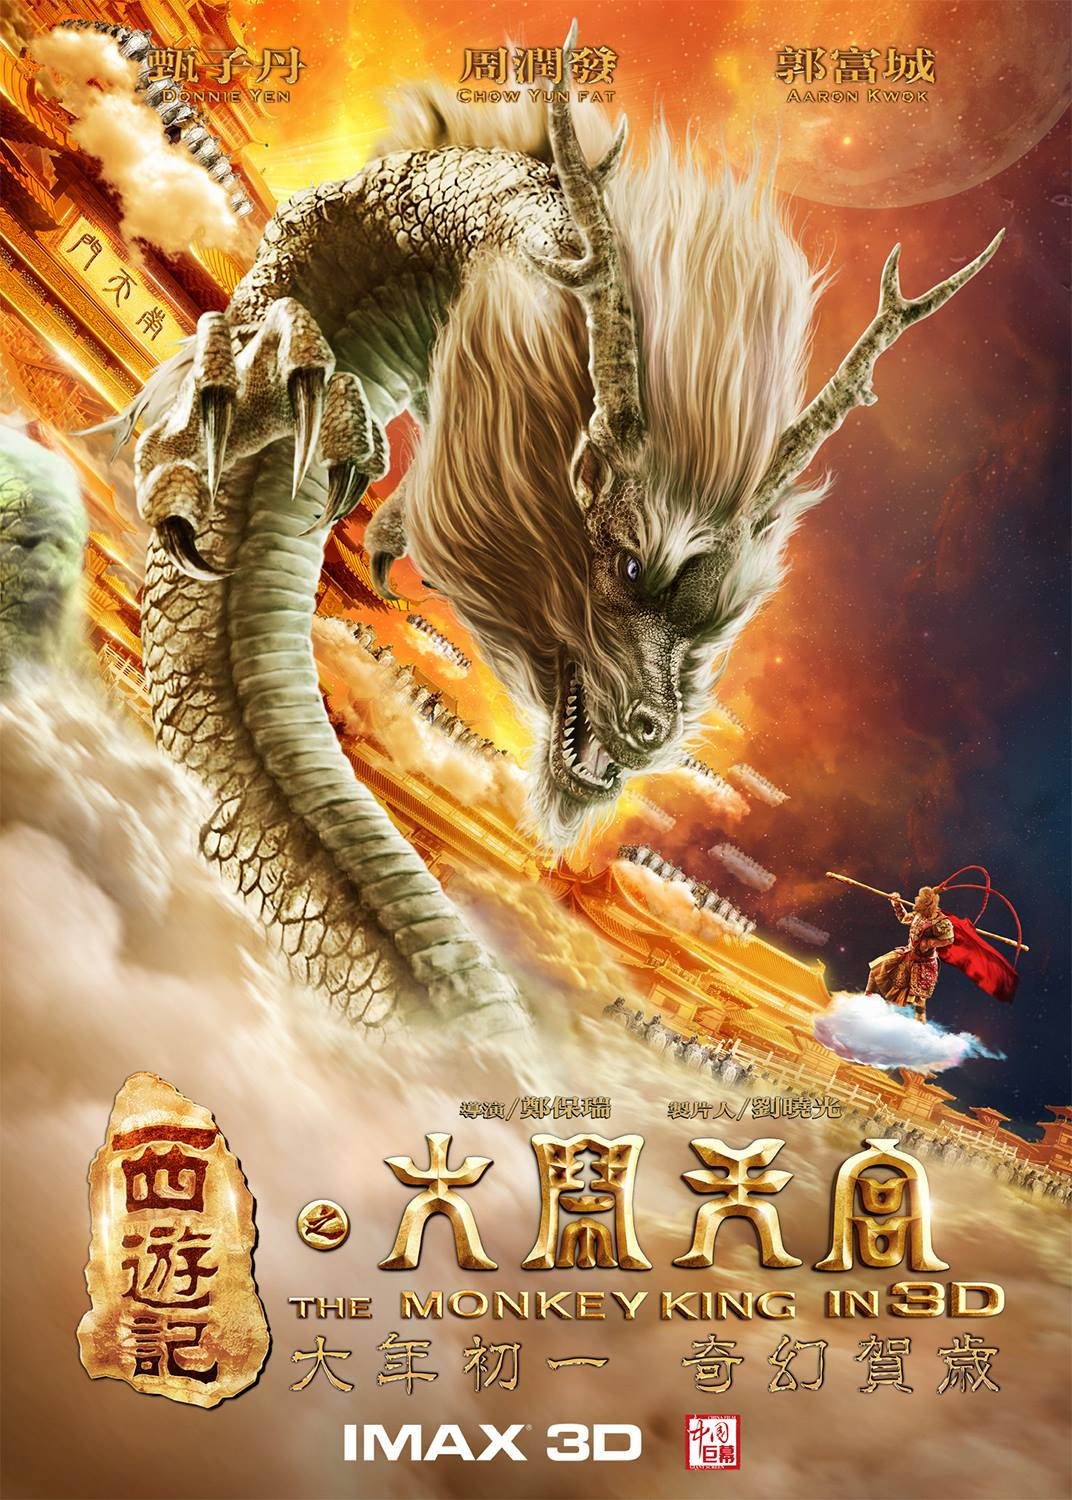 Interviews With Monster Girls Wallpaper New Monkey King 3d Dragon Action Trailer And Images Updated